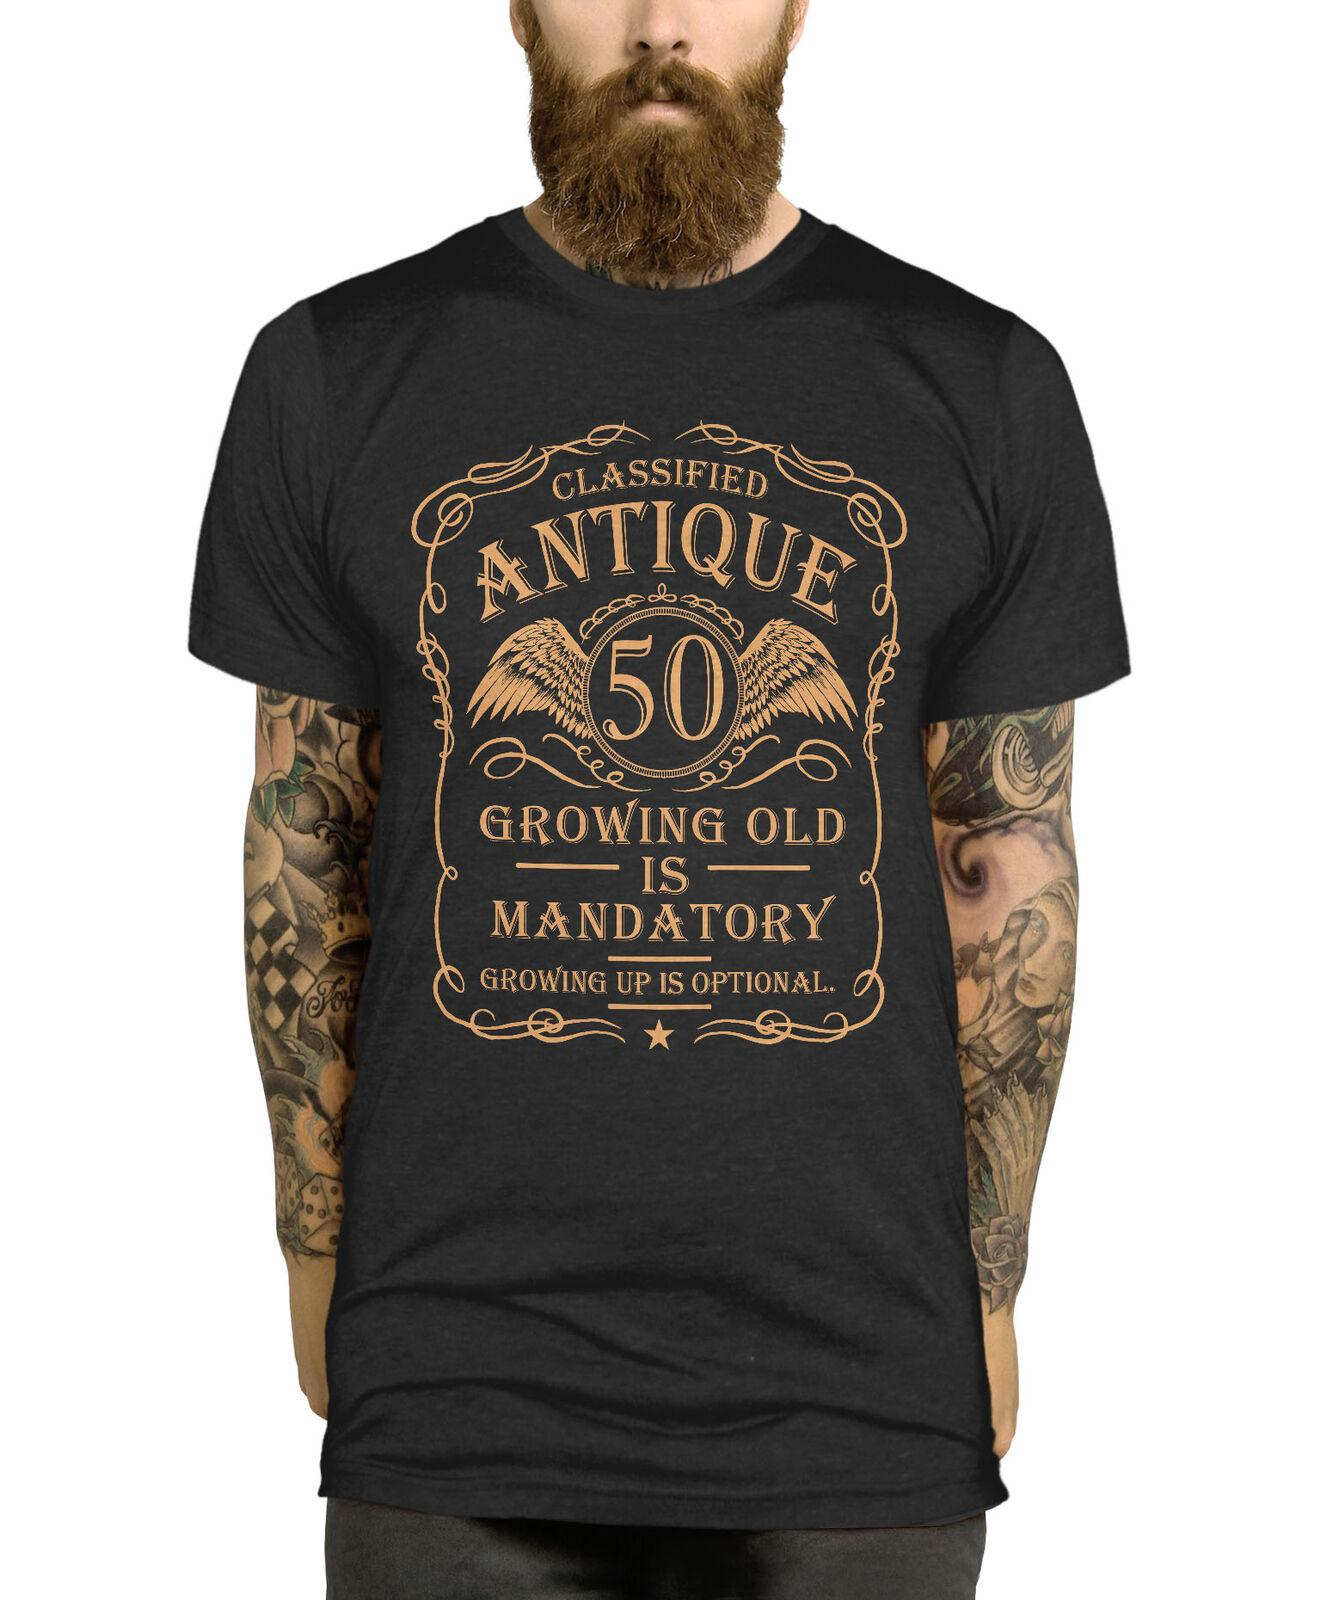 50th Birthday T Shirt Gift Idea For Men Funny Present Vintage 50 Year Old Man R Political Tee Shirts From Passion90 1148